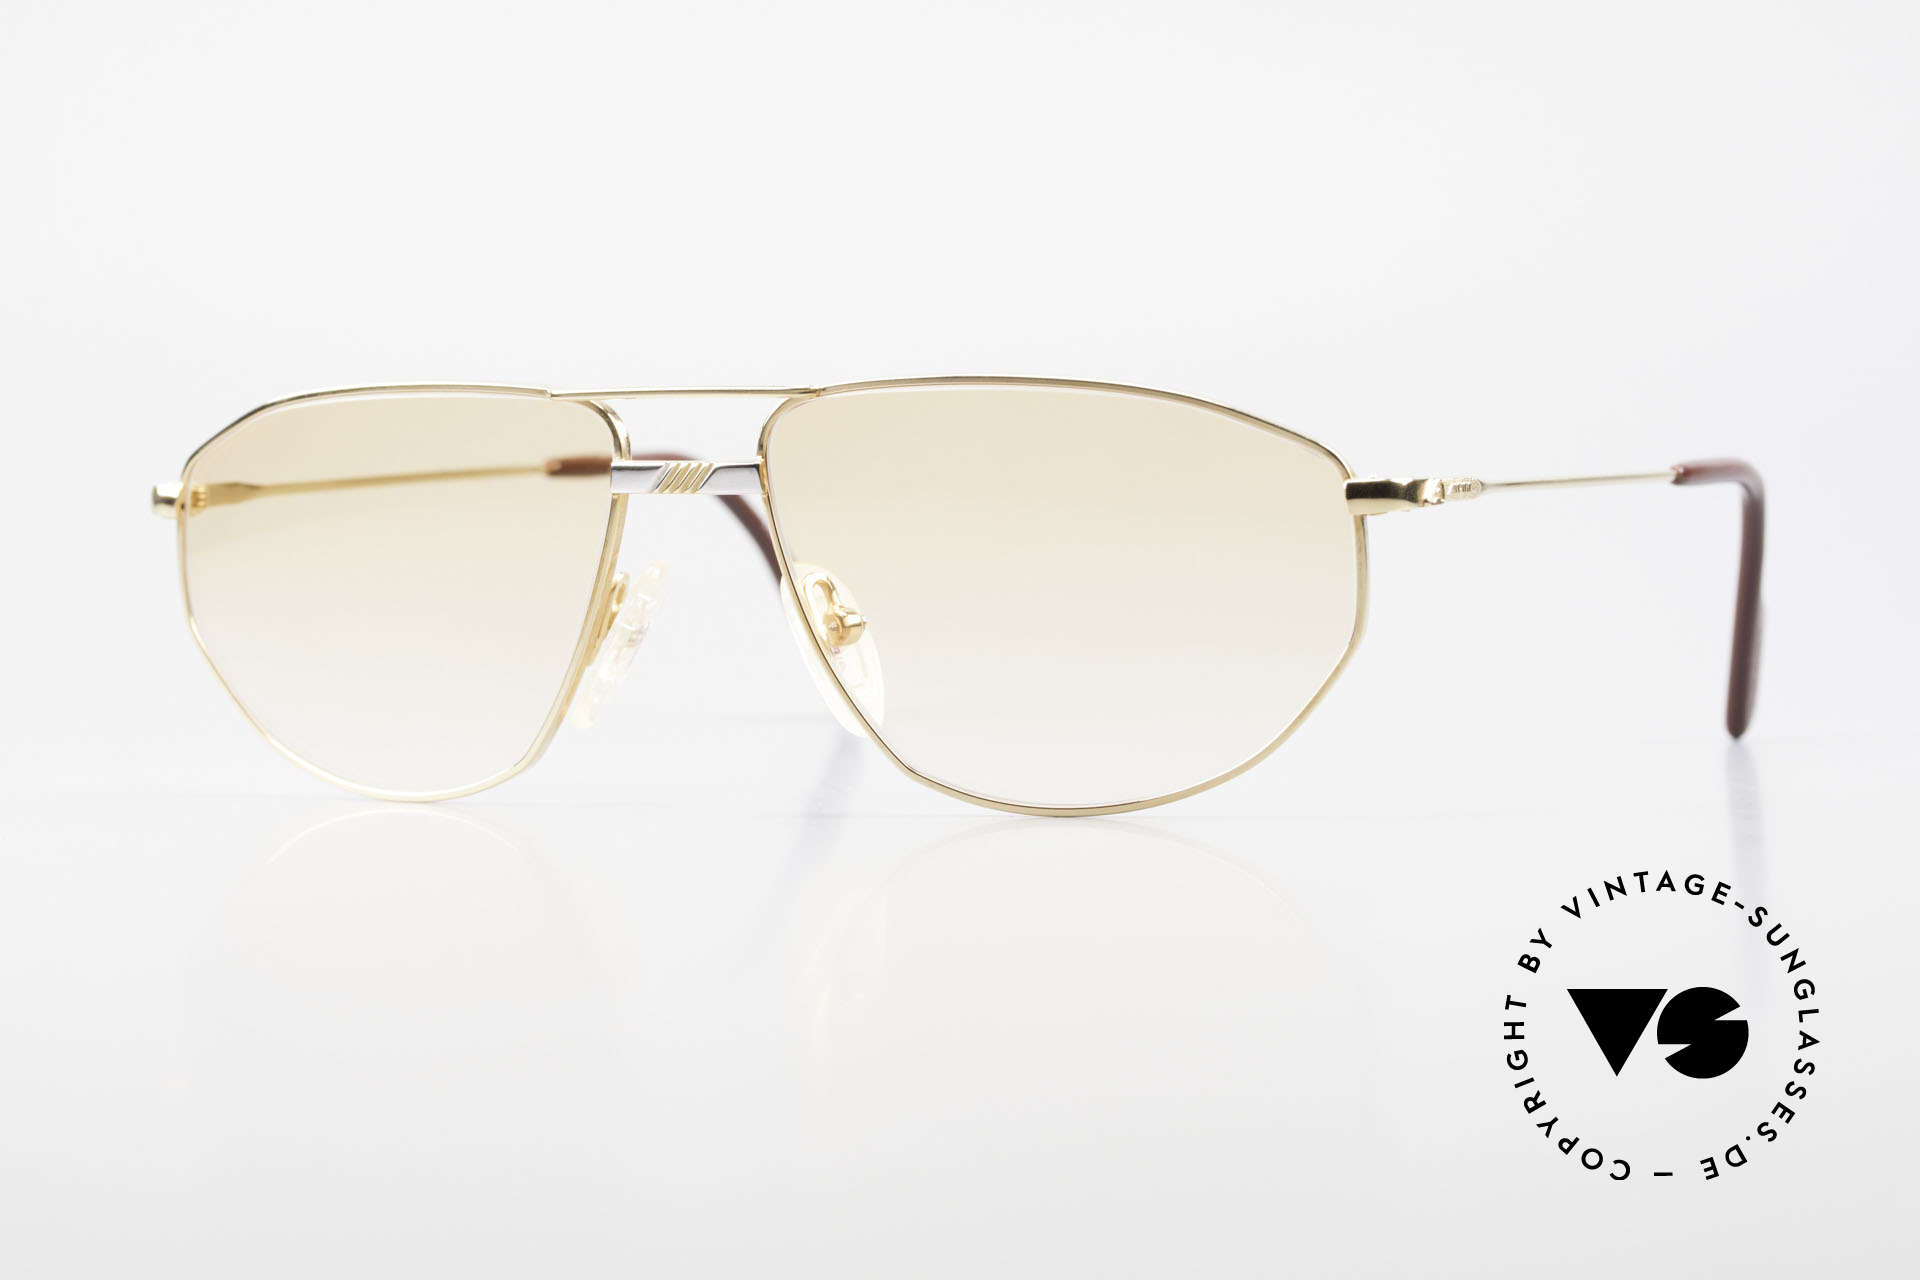 Alpina FM41 Stylish Vintage 80's Sunglasses, stylish metal sunglasses by Alpina from the 1980's, Made for Men and Women